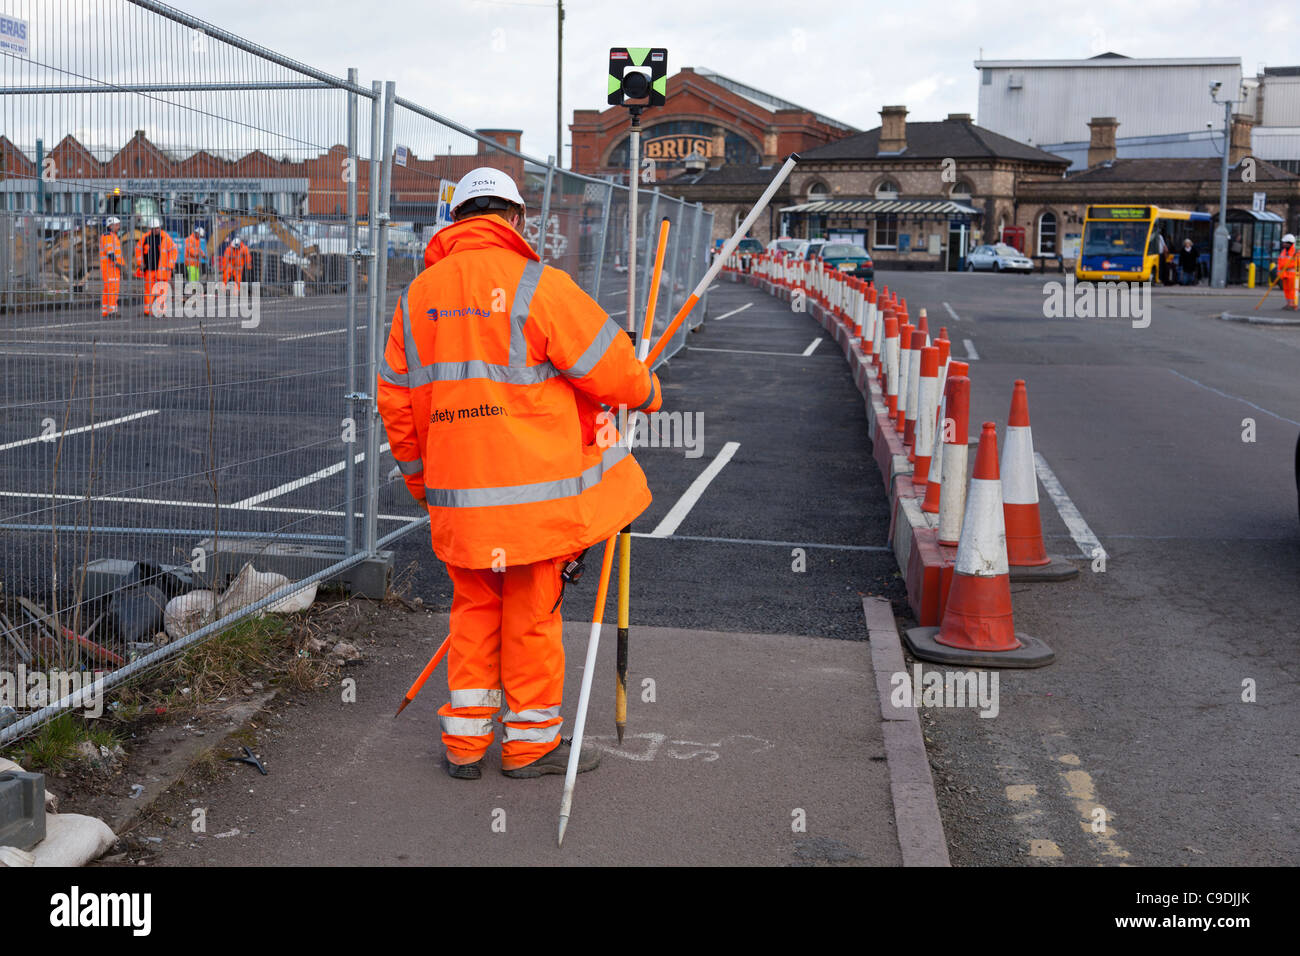 Building surveyor in a Hi-Viz jacket and trousers taking levels. Stock Photo